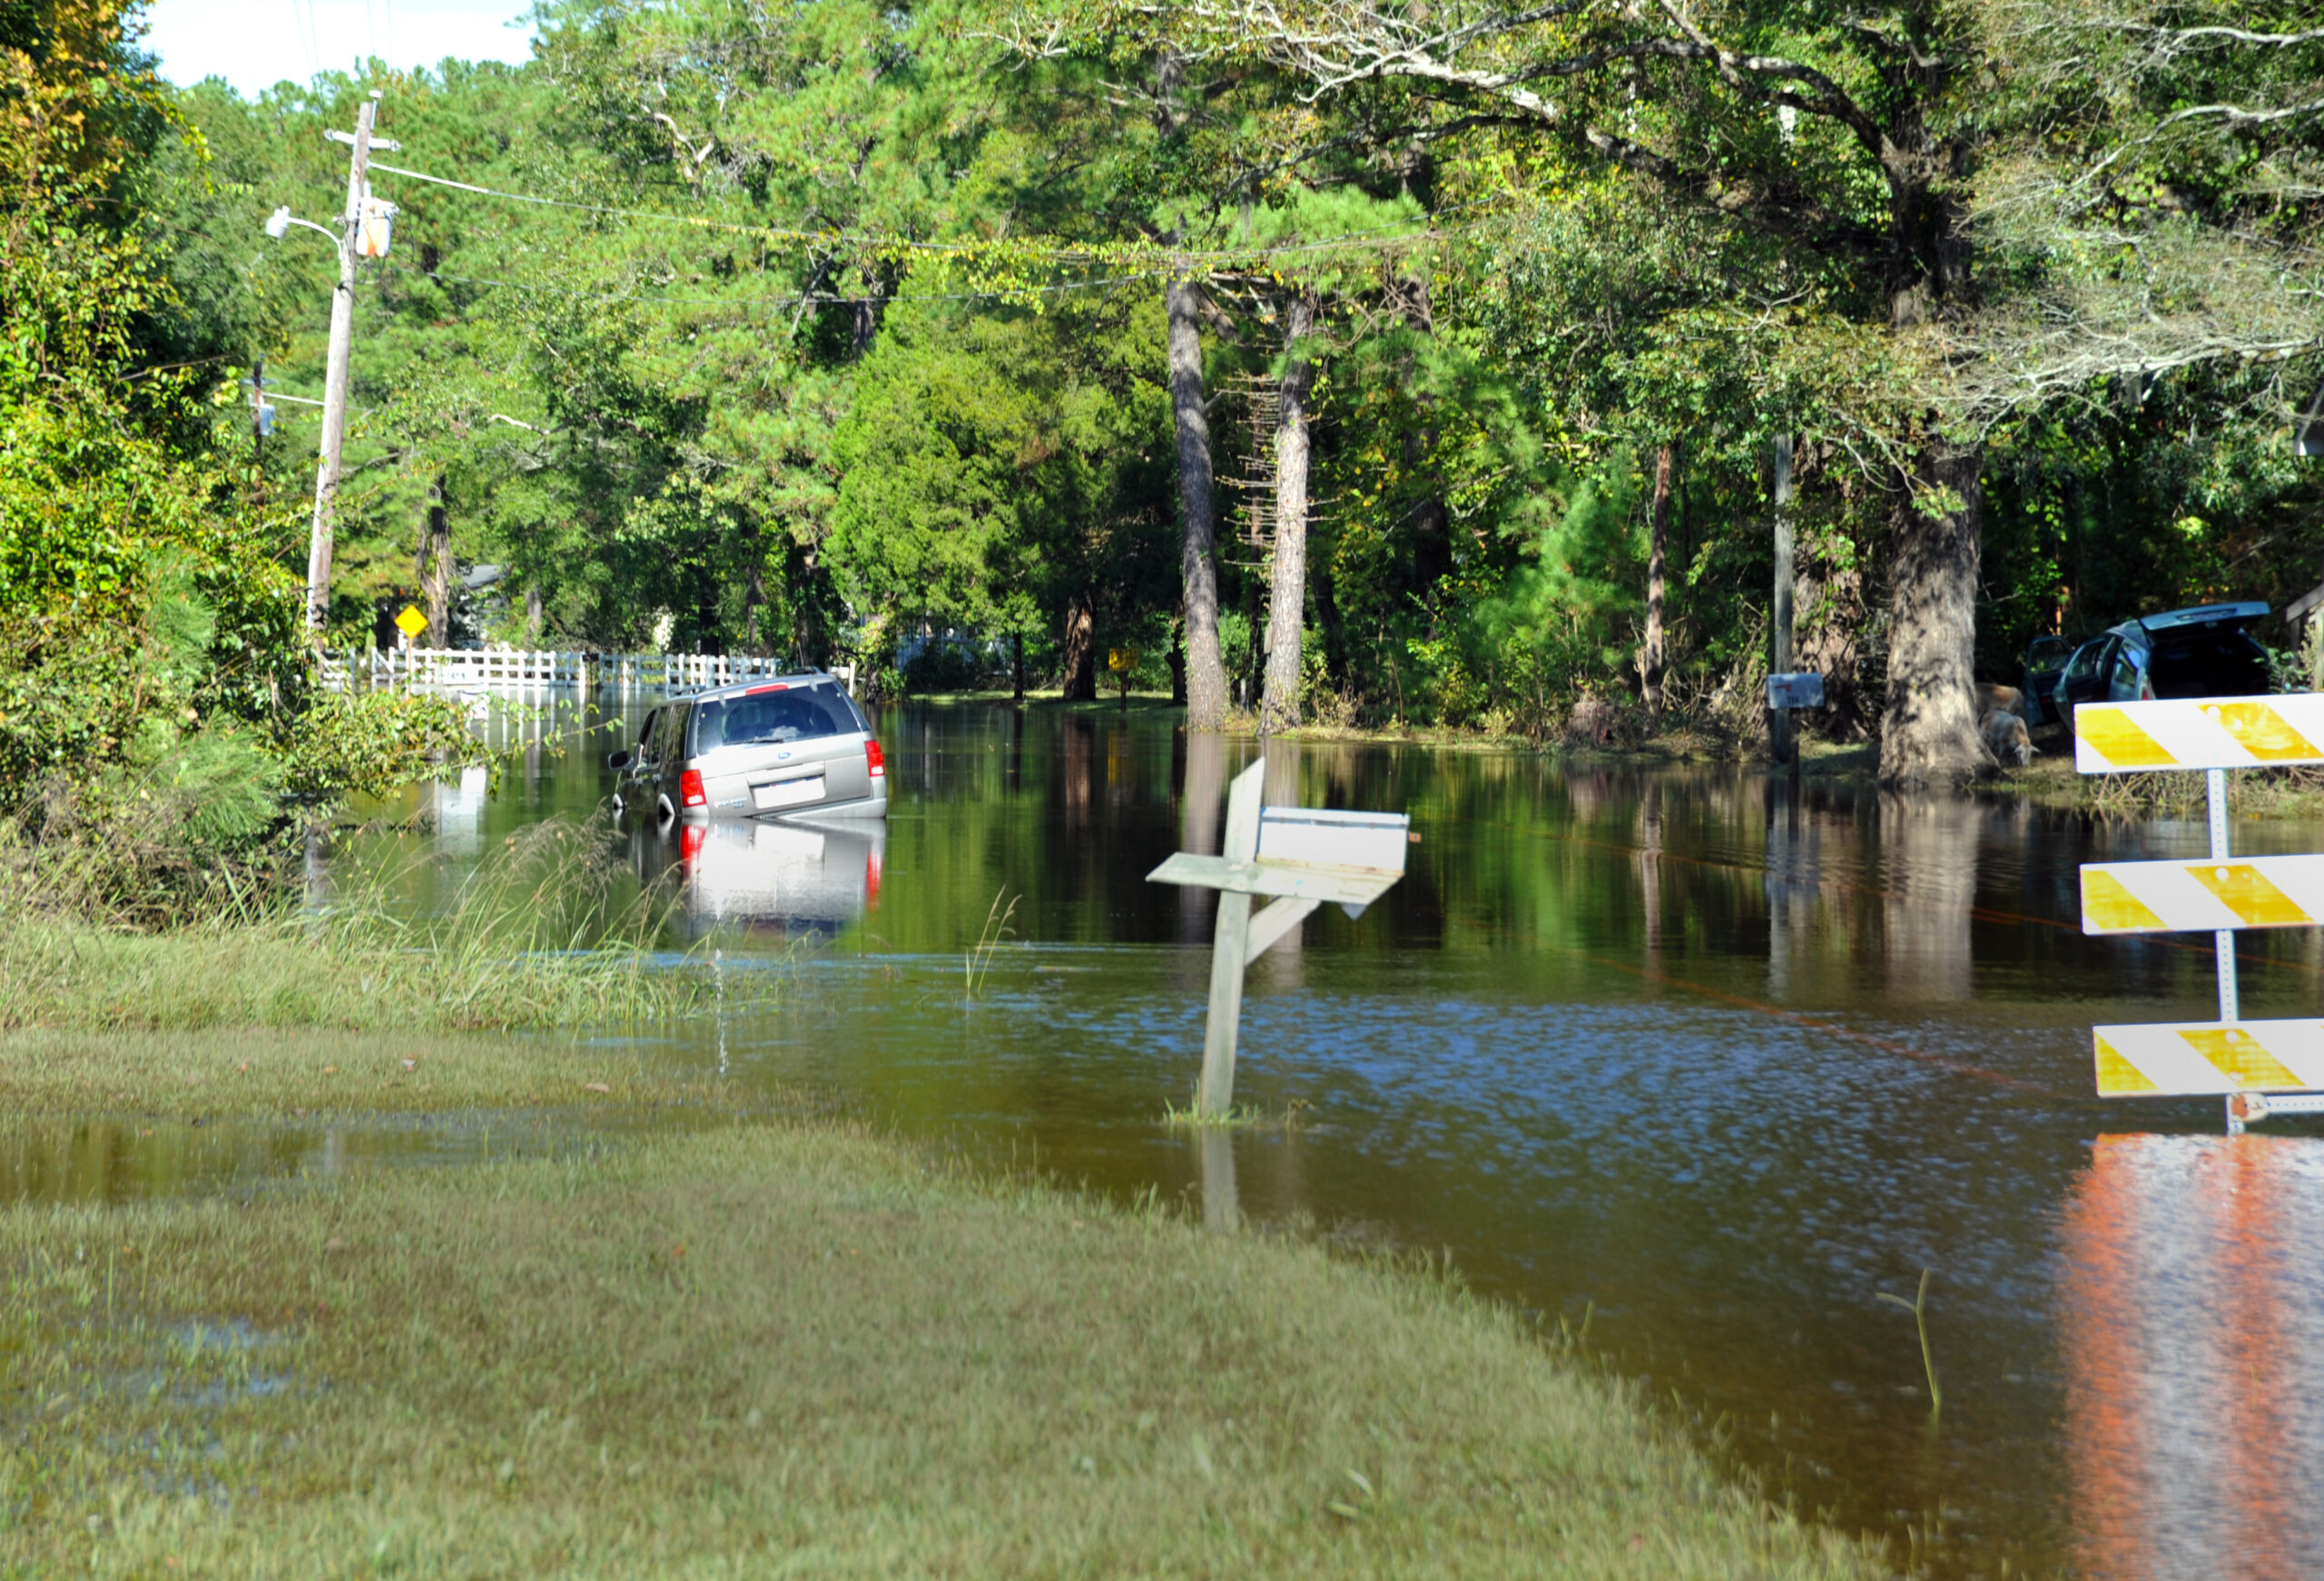 Many communities have experienced increased flooding over the last few decades and will continue to do so as the rising temperatures shift rainfall patterns and exacerbate weather events. Vanceboro, 2010, after Tropical Storm Nicole. Credit: Tim Burkitt/FEMA.